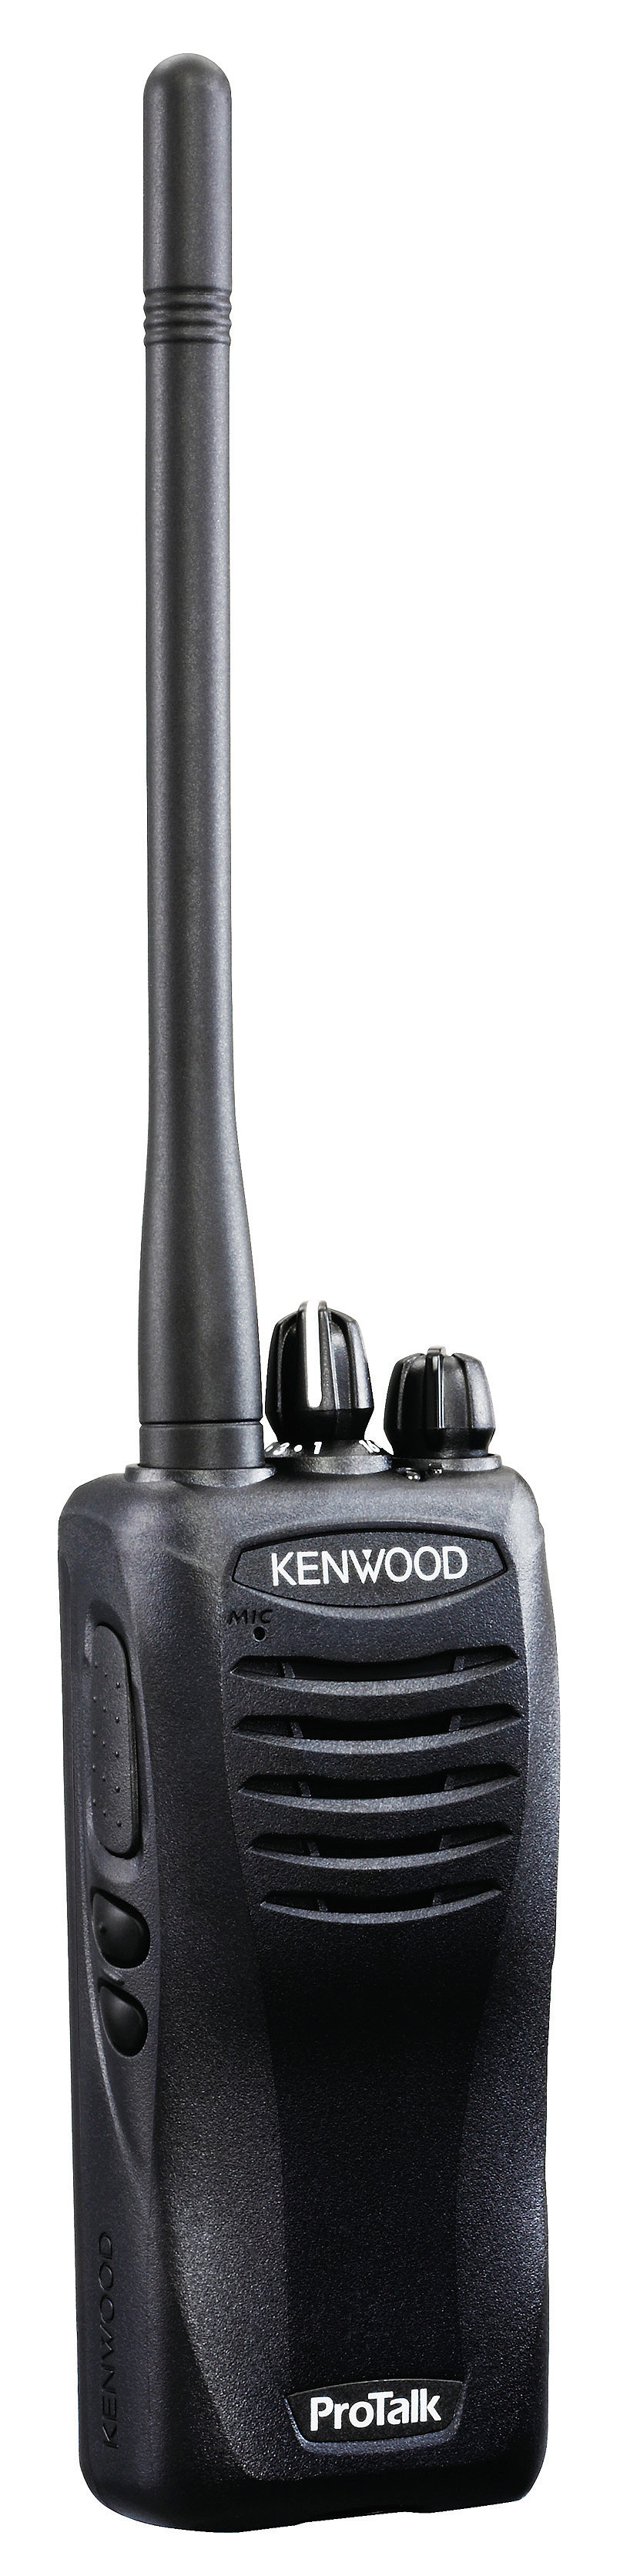 Kenwood ProTalk 16 Channel Portable VHF Two Way Radios - 2 Watt